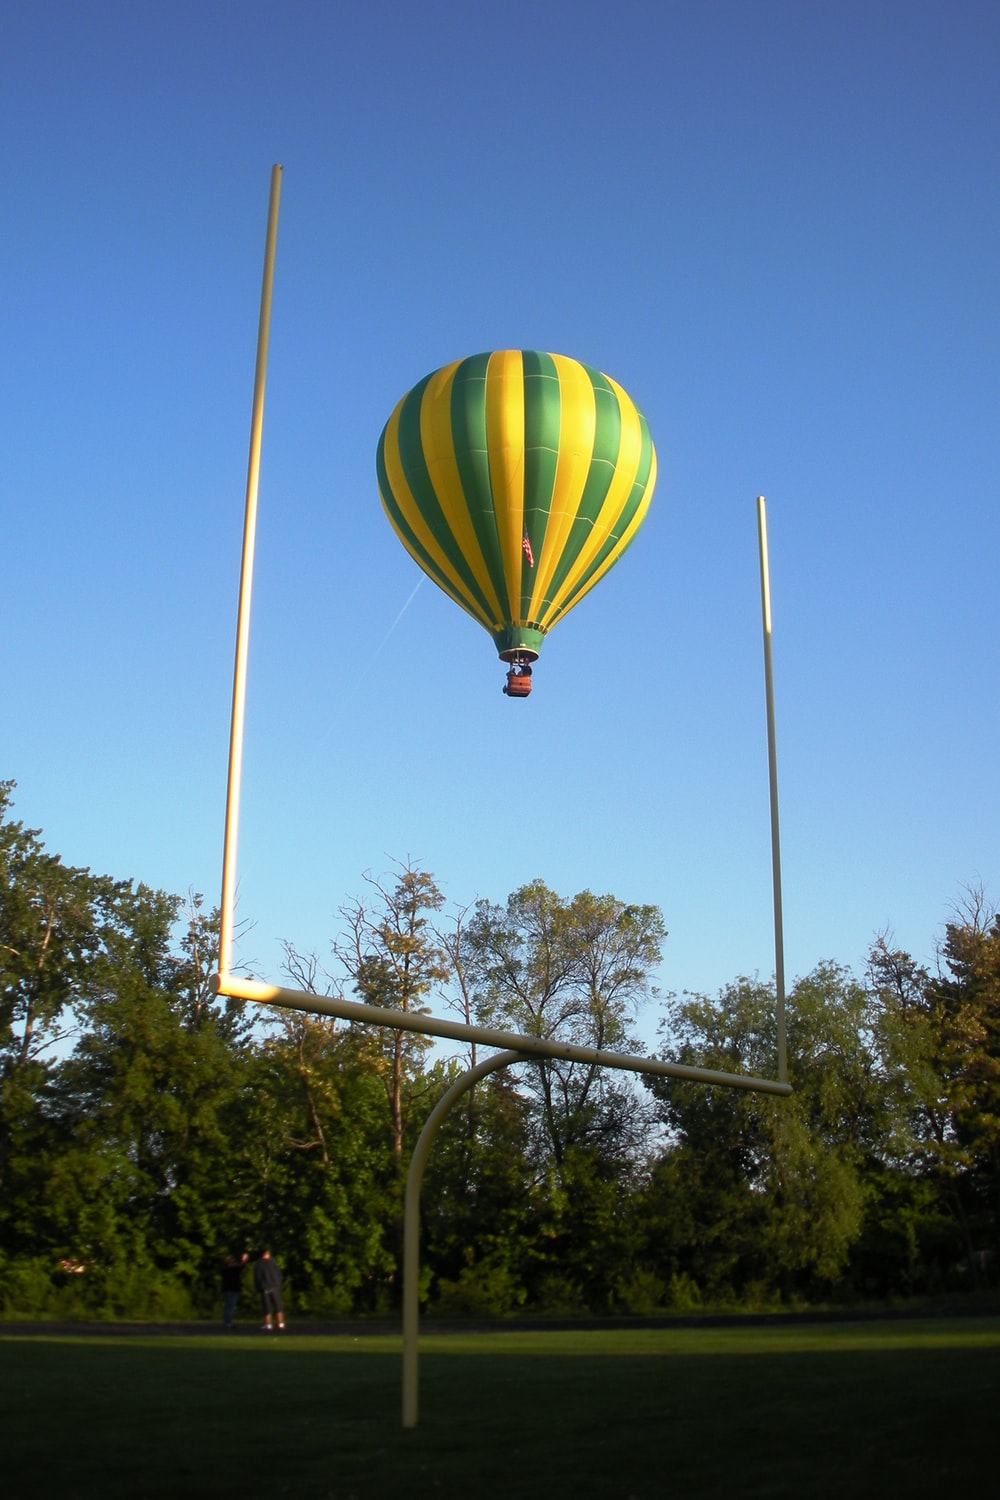 green yellow and blue hot air balloon on the air during daytime